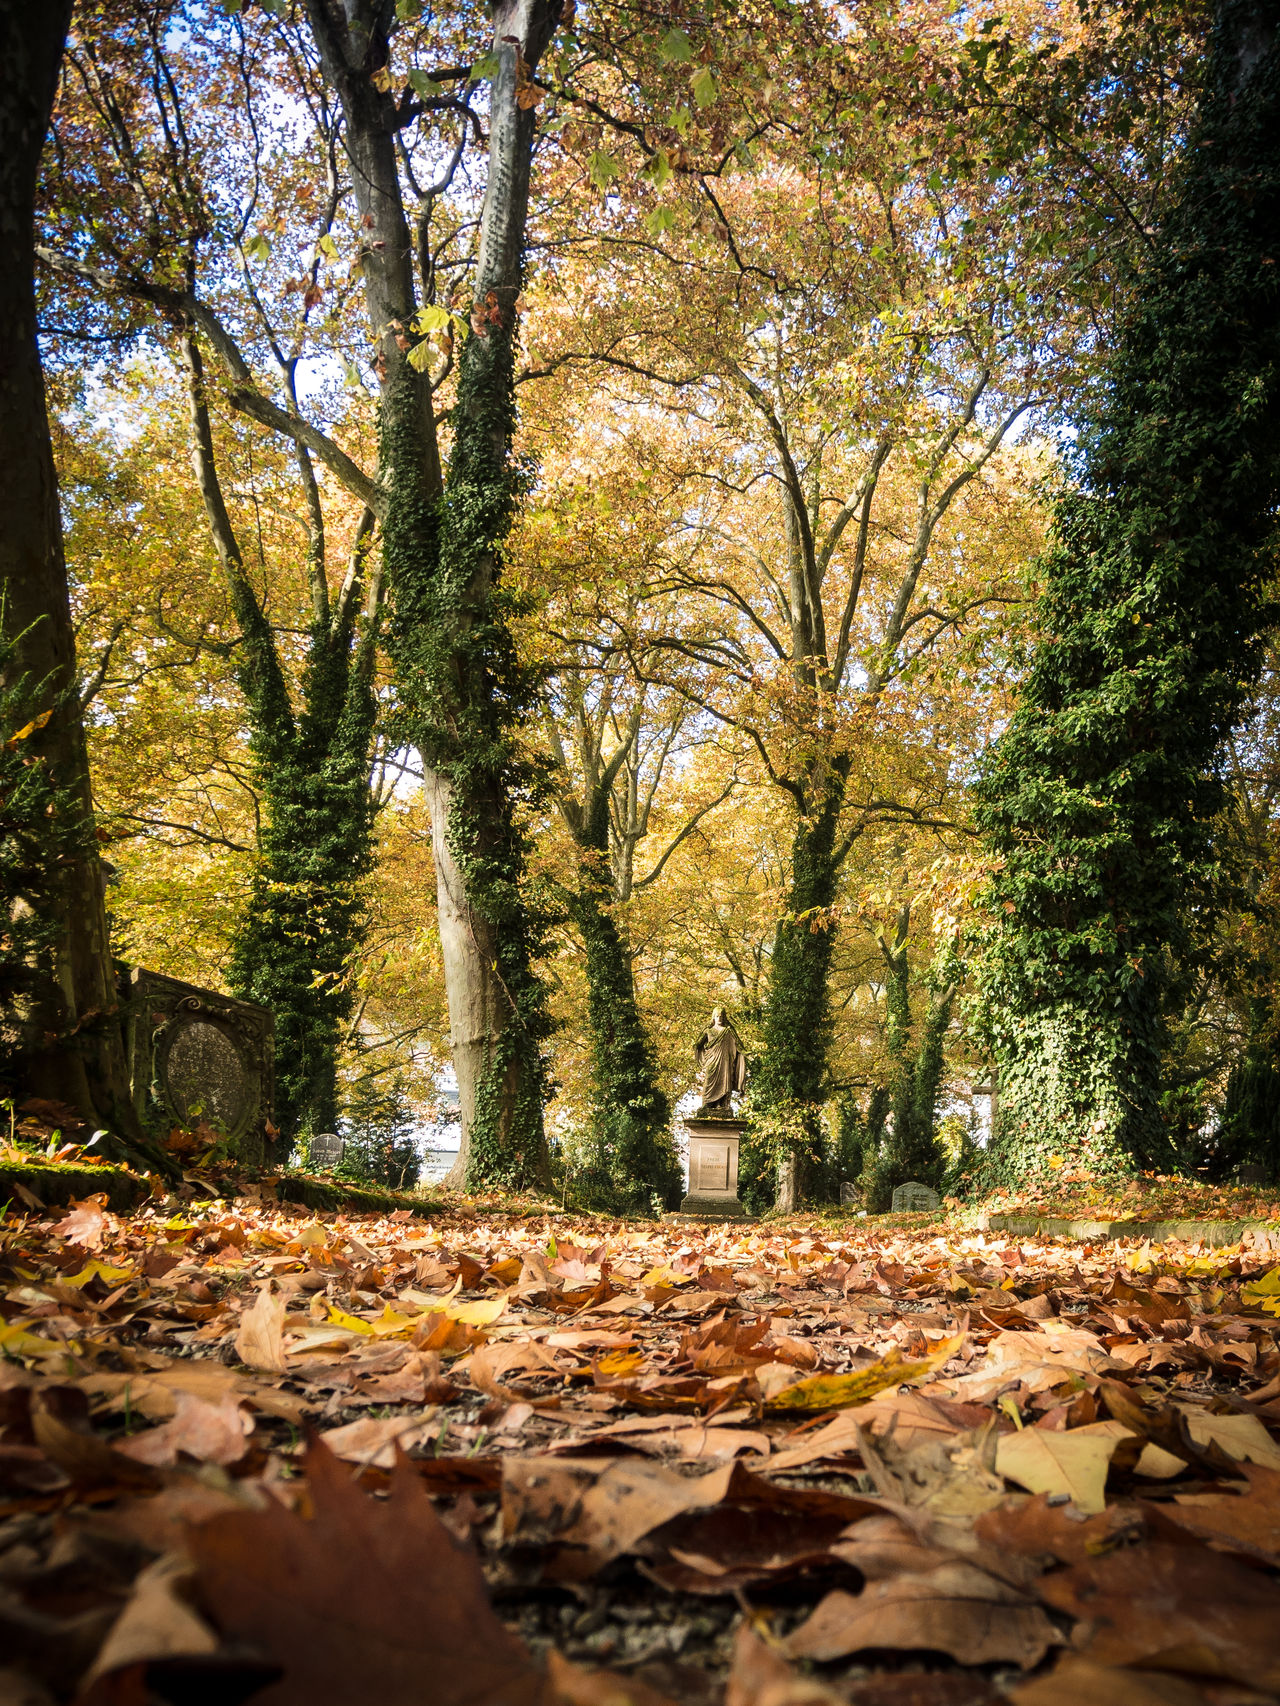 Autumn Beauty In Nature Day Graveyard Beauty Growth Leaf Nature No People Outdoors Scenics Tranquility Tree Trees